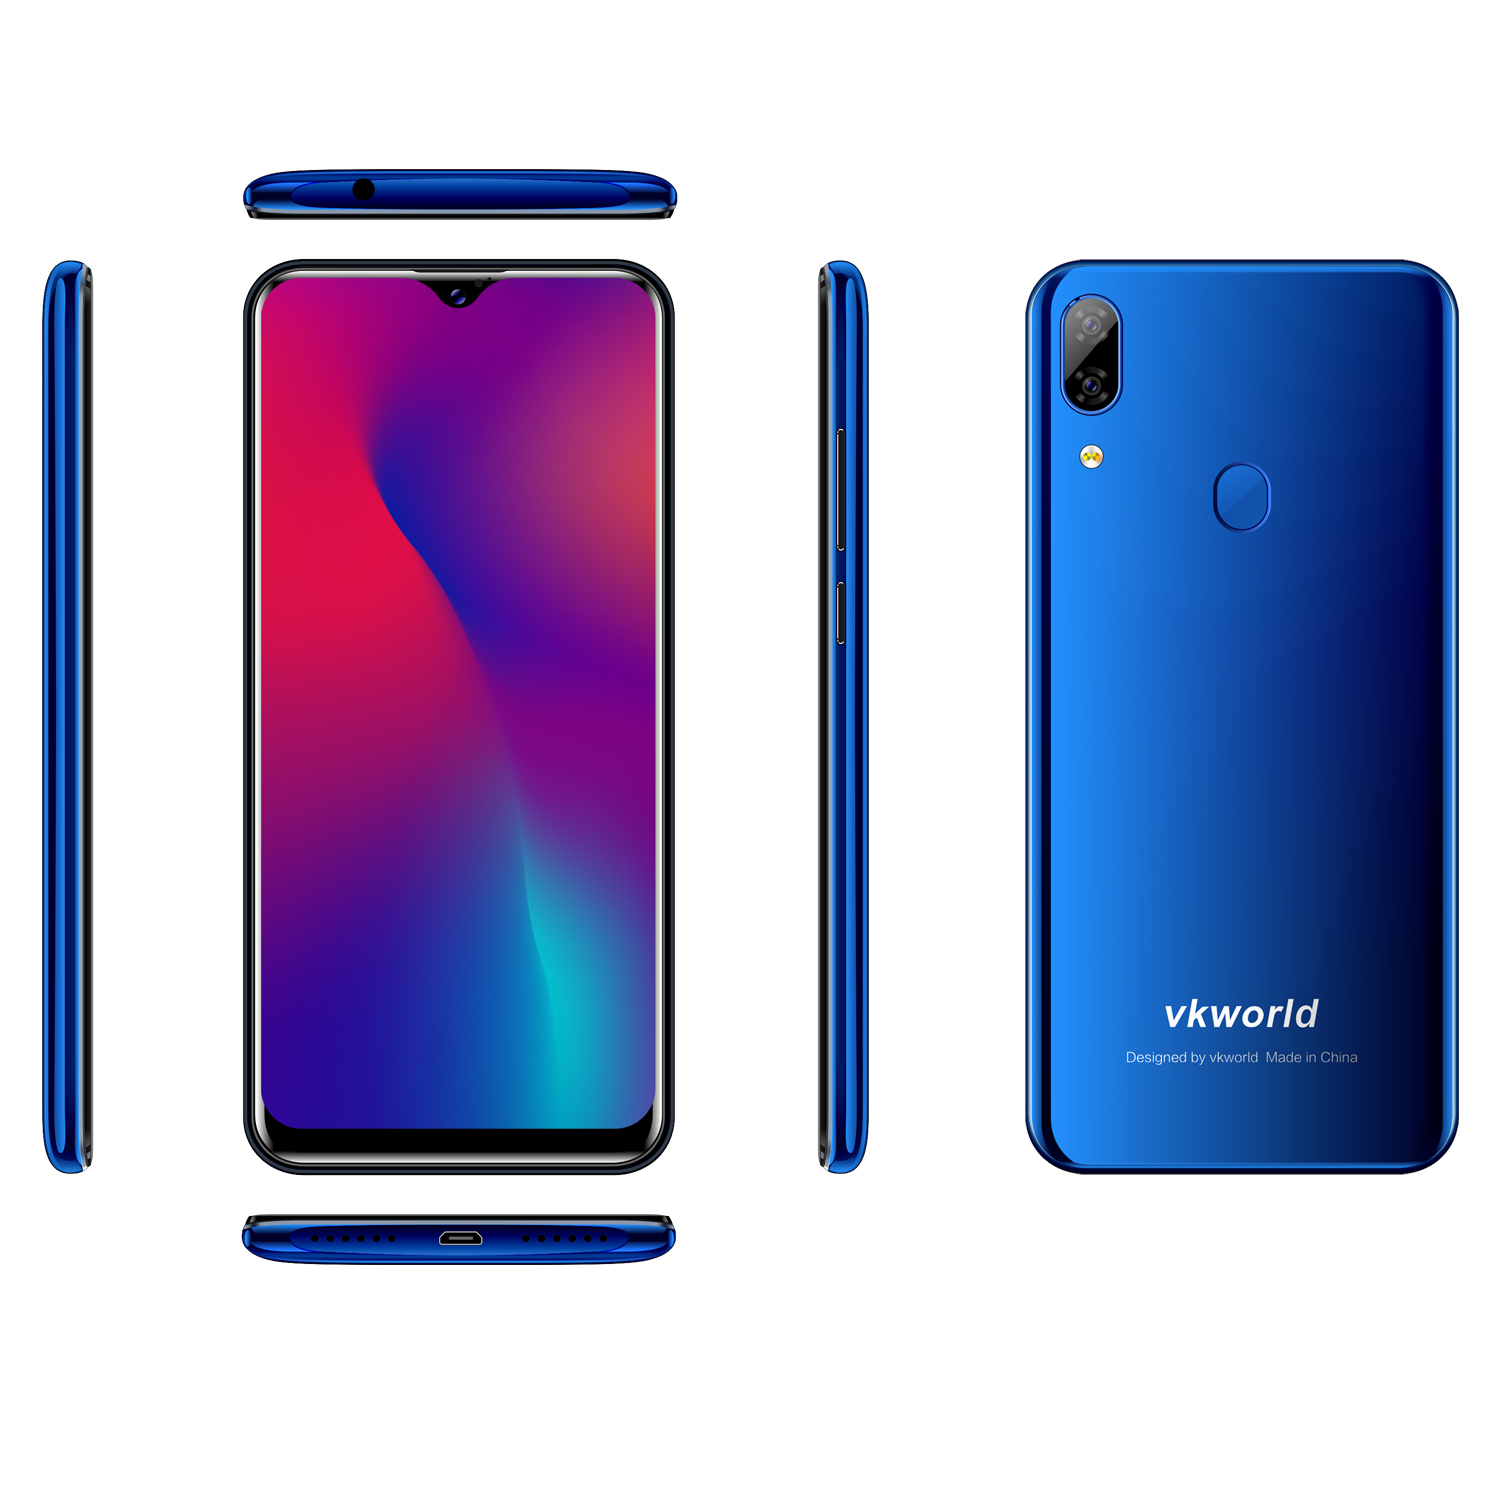 VKWORLD SD100 OEM Fingerprint Unlocked handphone Android 9.0  LTE 4G 3G+32G Mobile Phone